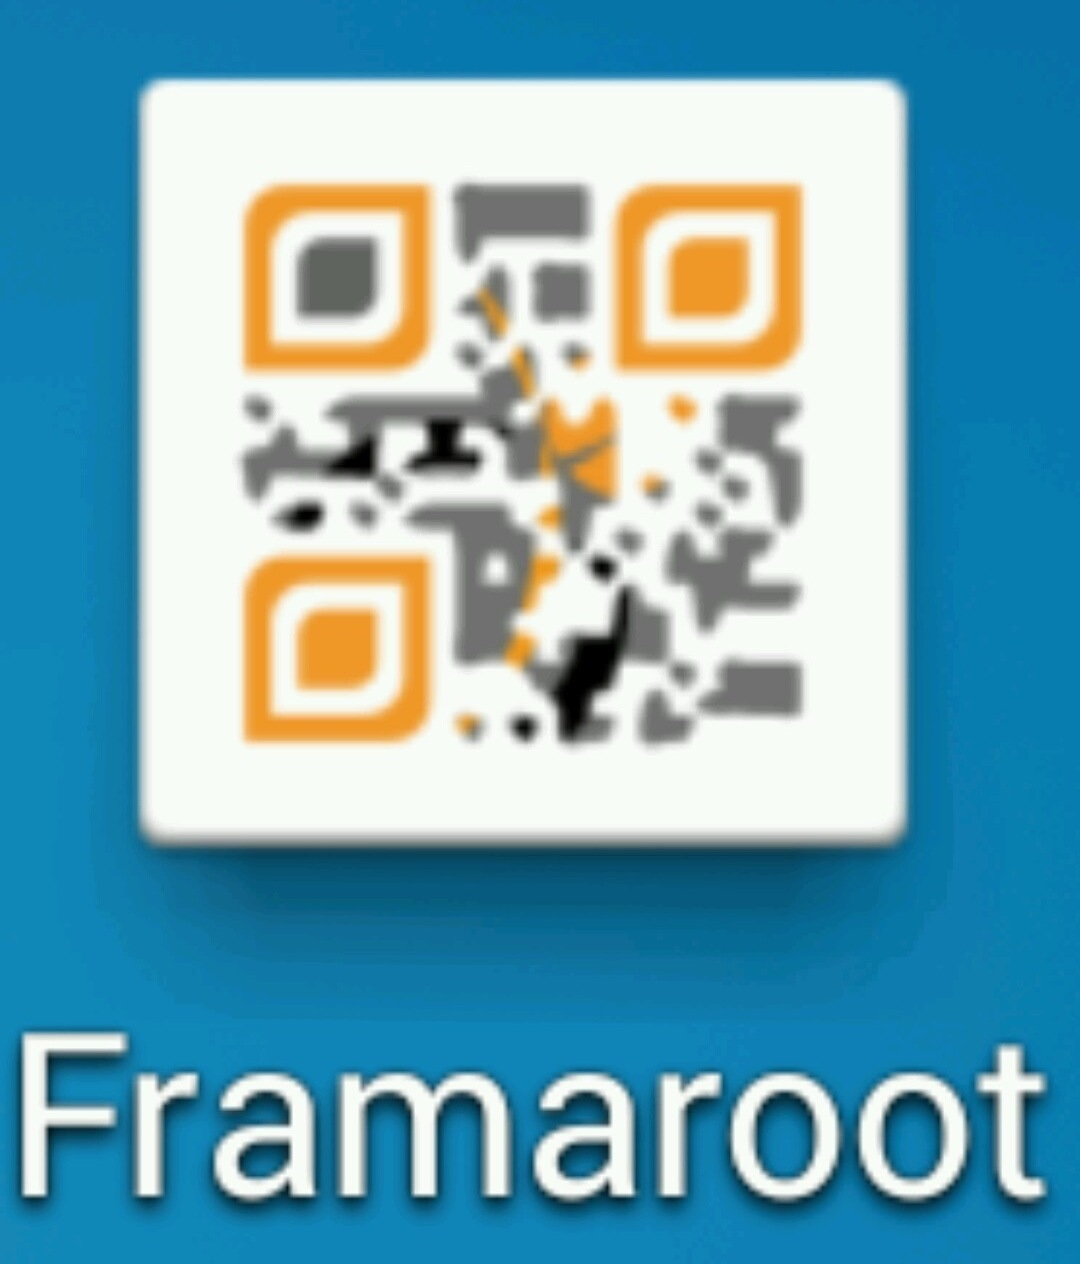 Framaroot, Rooting, Android device, any branded, cloned